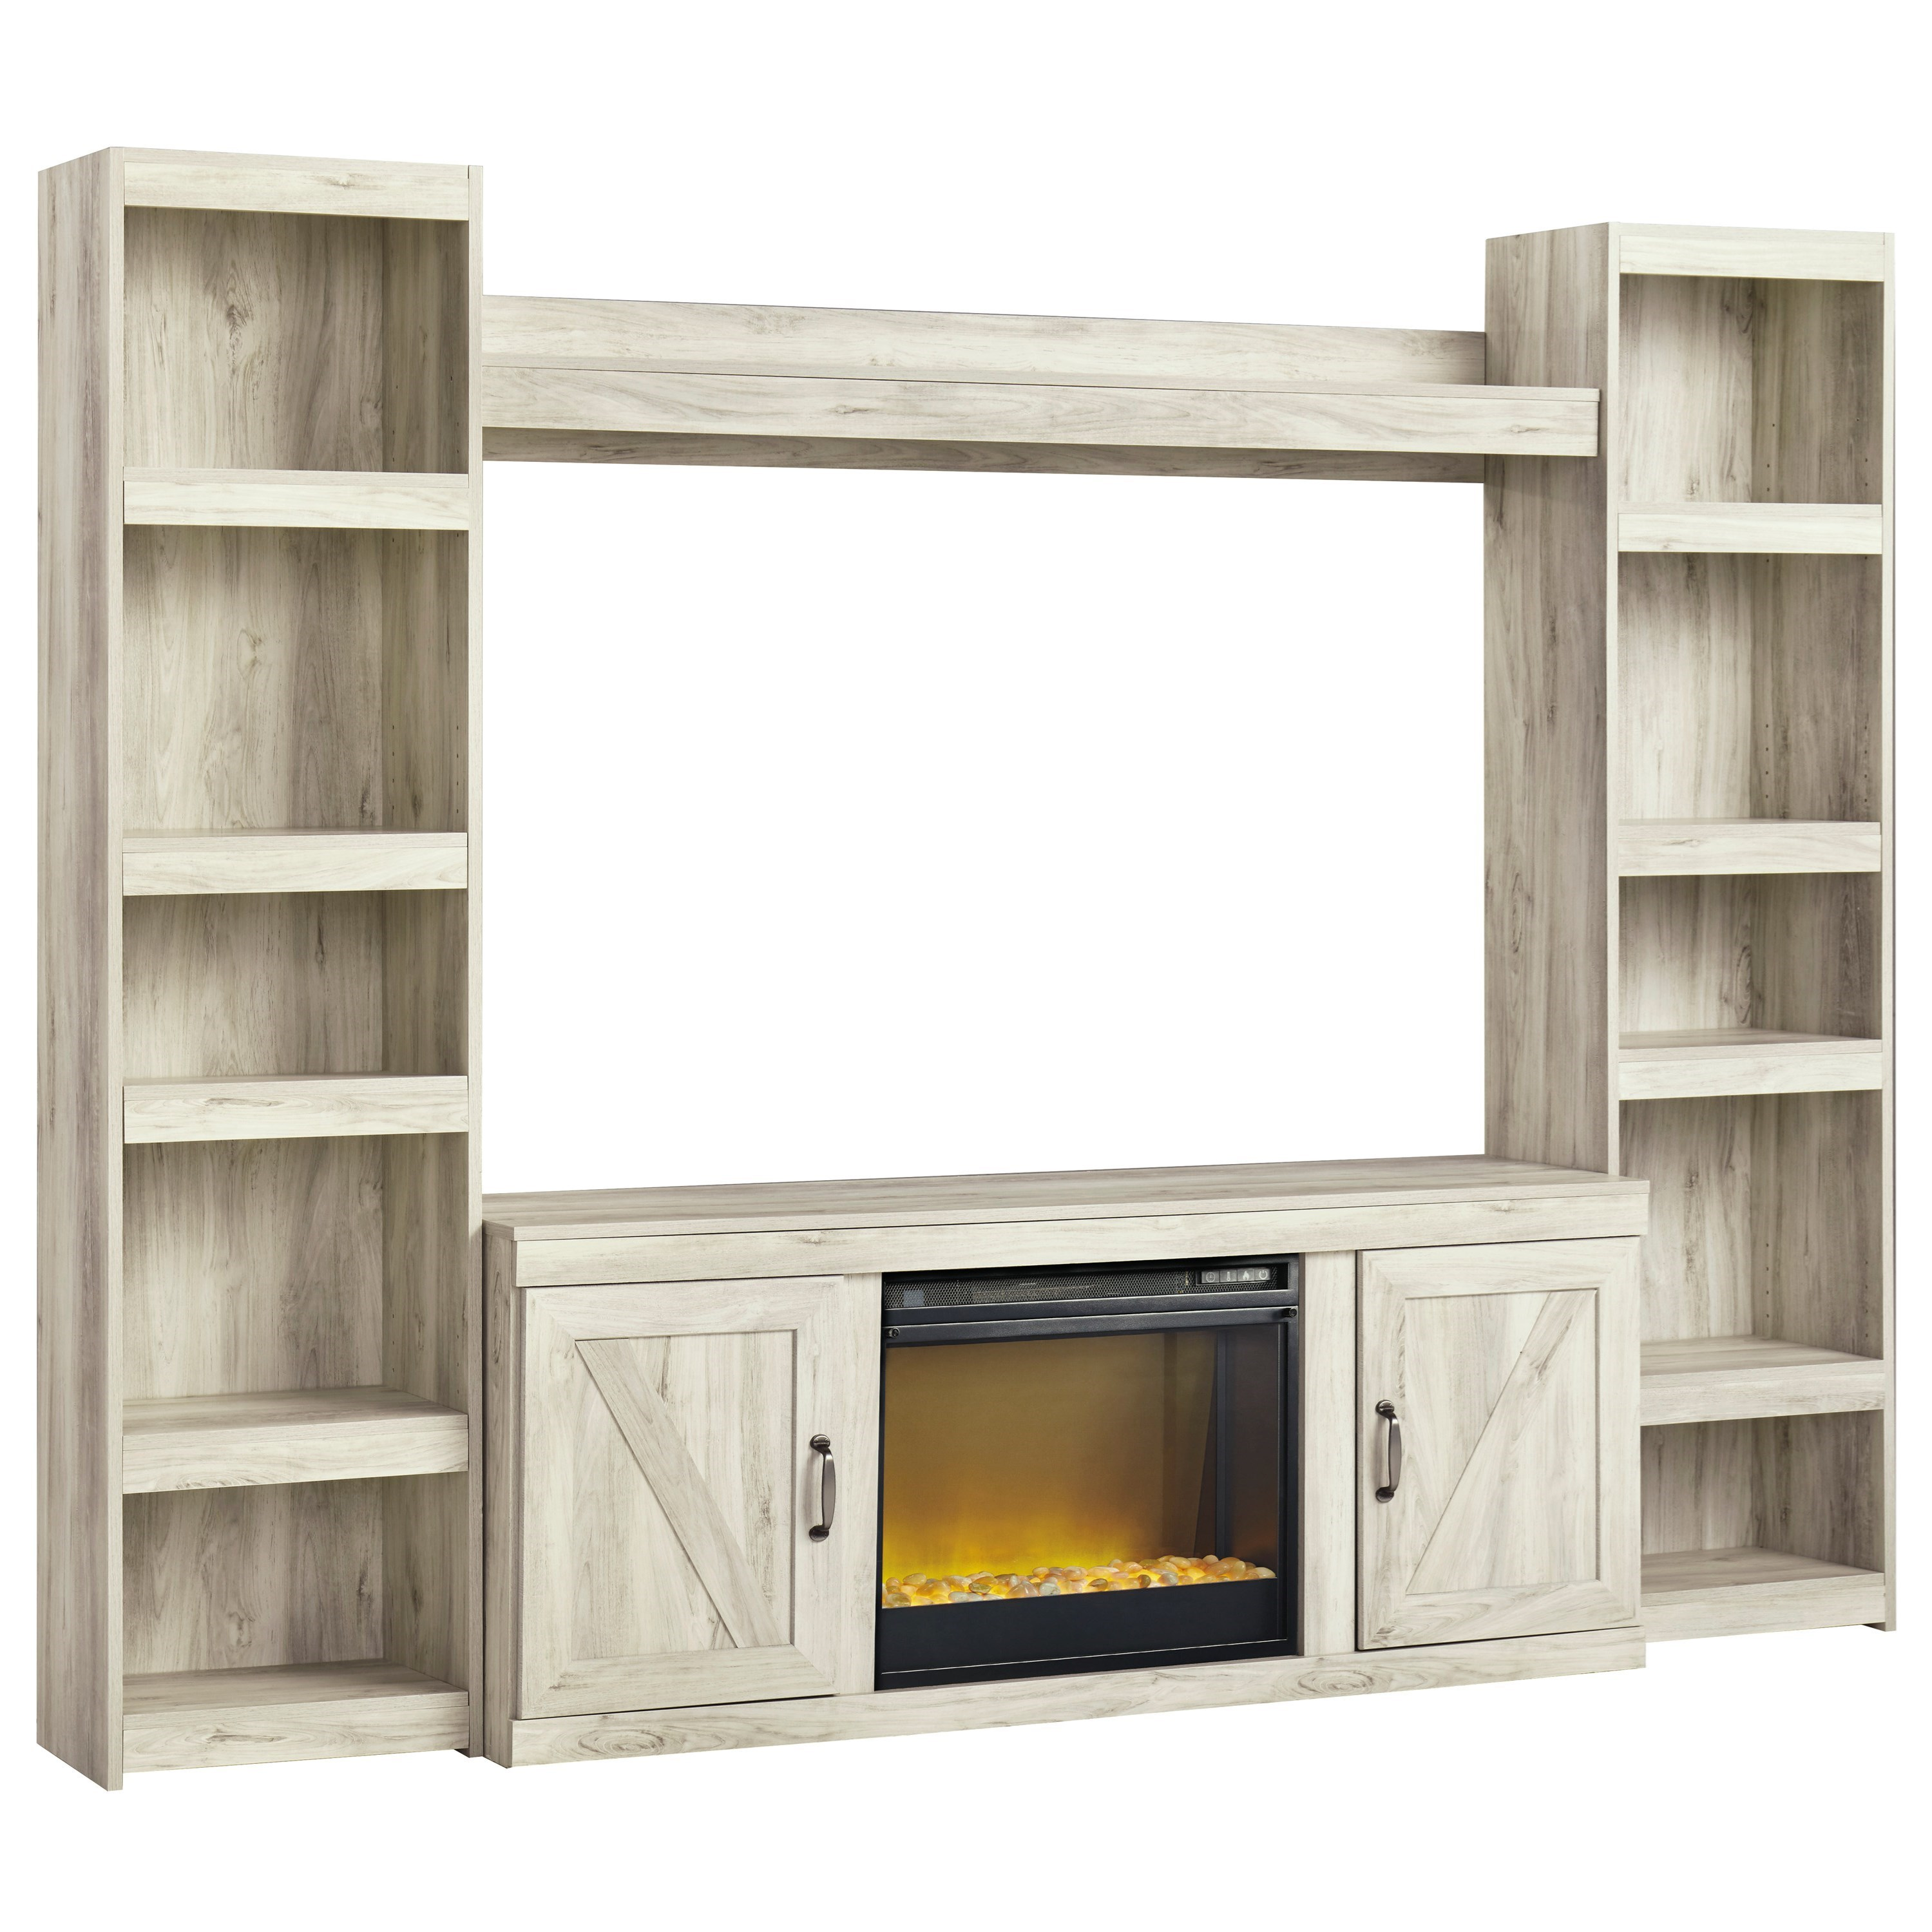 Bellaby TV Stand w/ Fireplace, Piers, & Bridge by Ashley (Signature Design) at Johnny Janosik